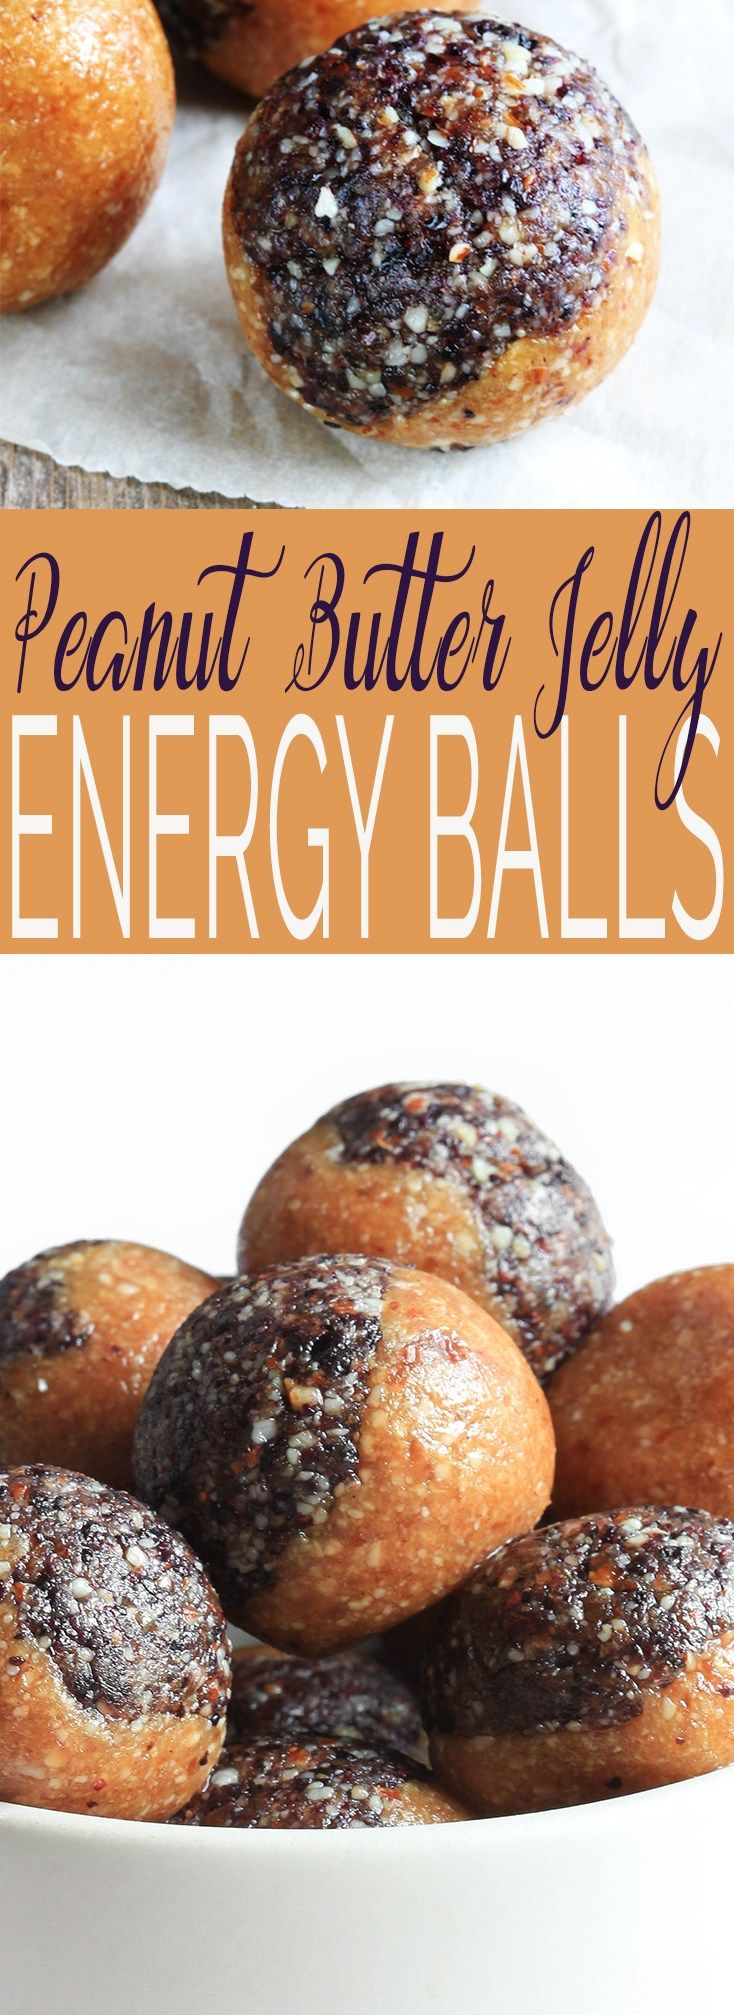 Peanut Butter and Jelly Energy Balls are a healthy little snack that is simple to make, requiring just 7 ingredients, 30 minutes and 1 bowl. Nutrient dense to keep you fueled throughout the day and to help fight cravings. #glutenfree #plantbased #vegan #wholefood